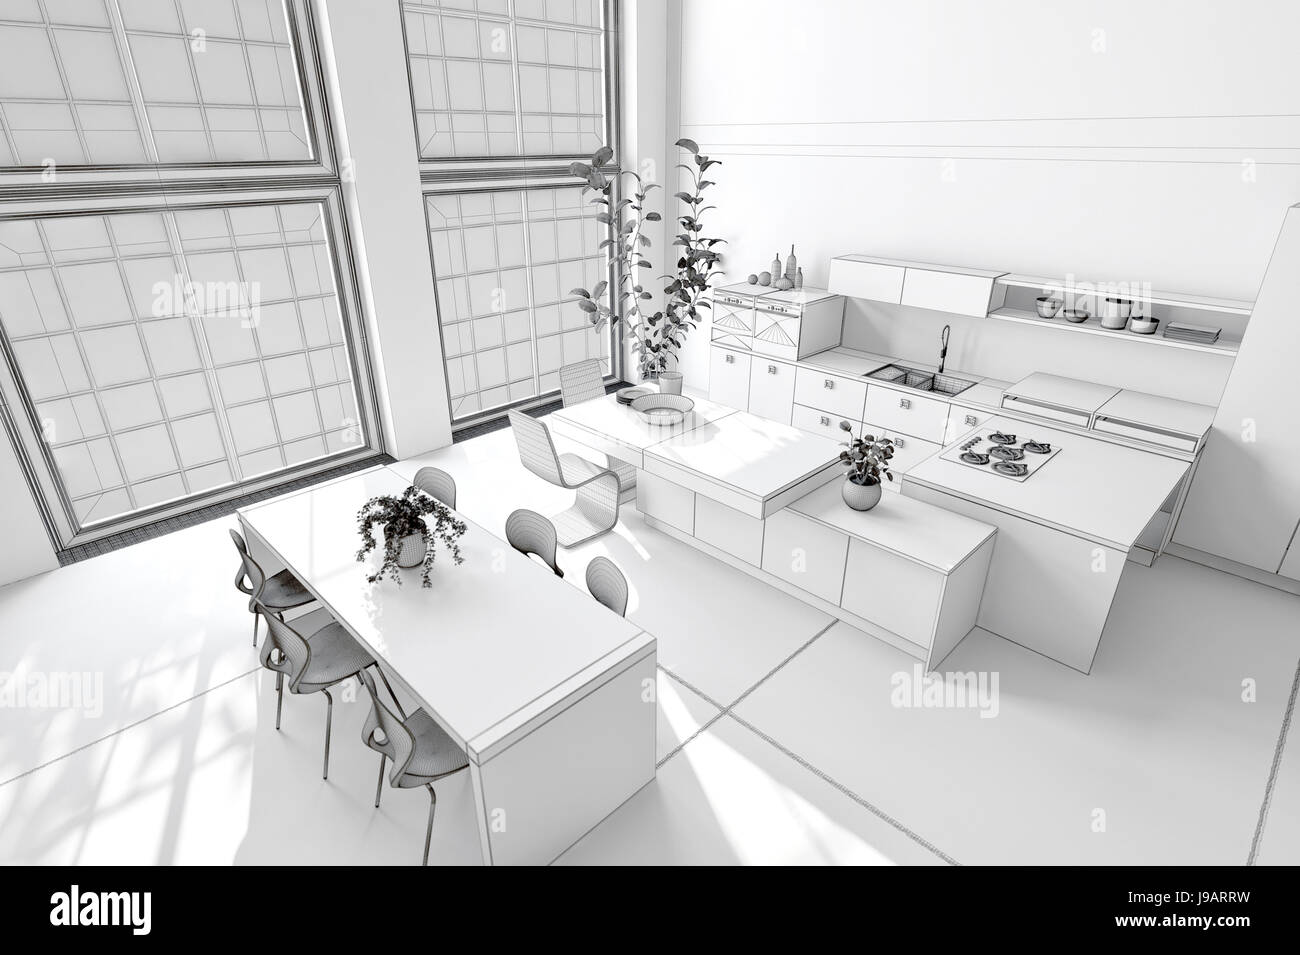 Fresh clean white kitchen and dining area with monochromatic decor, fitted cabinets and appliances and a modern Stock Photo